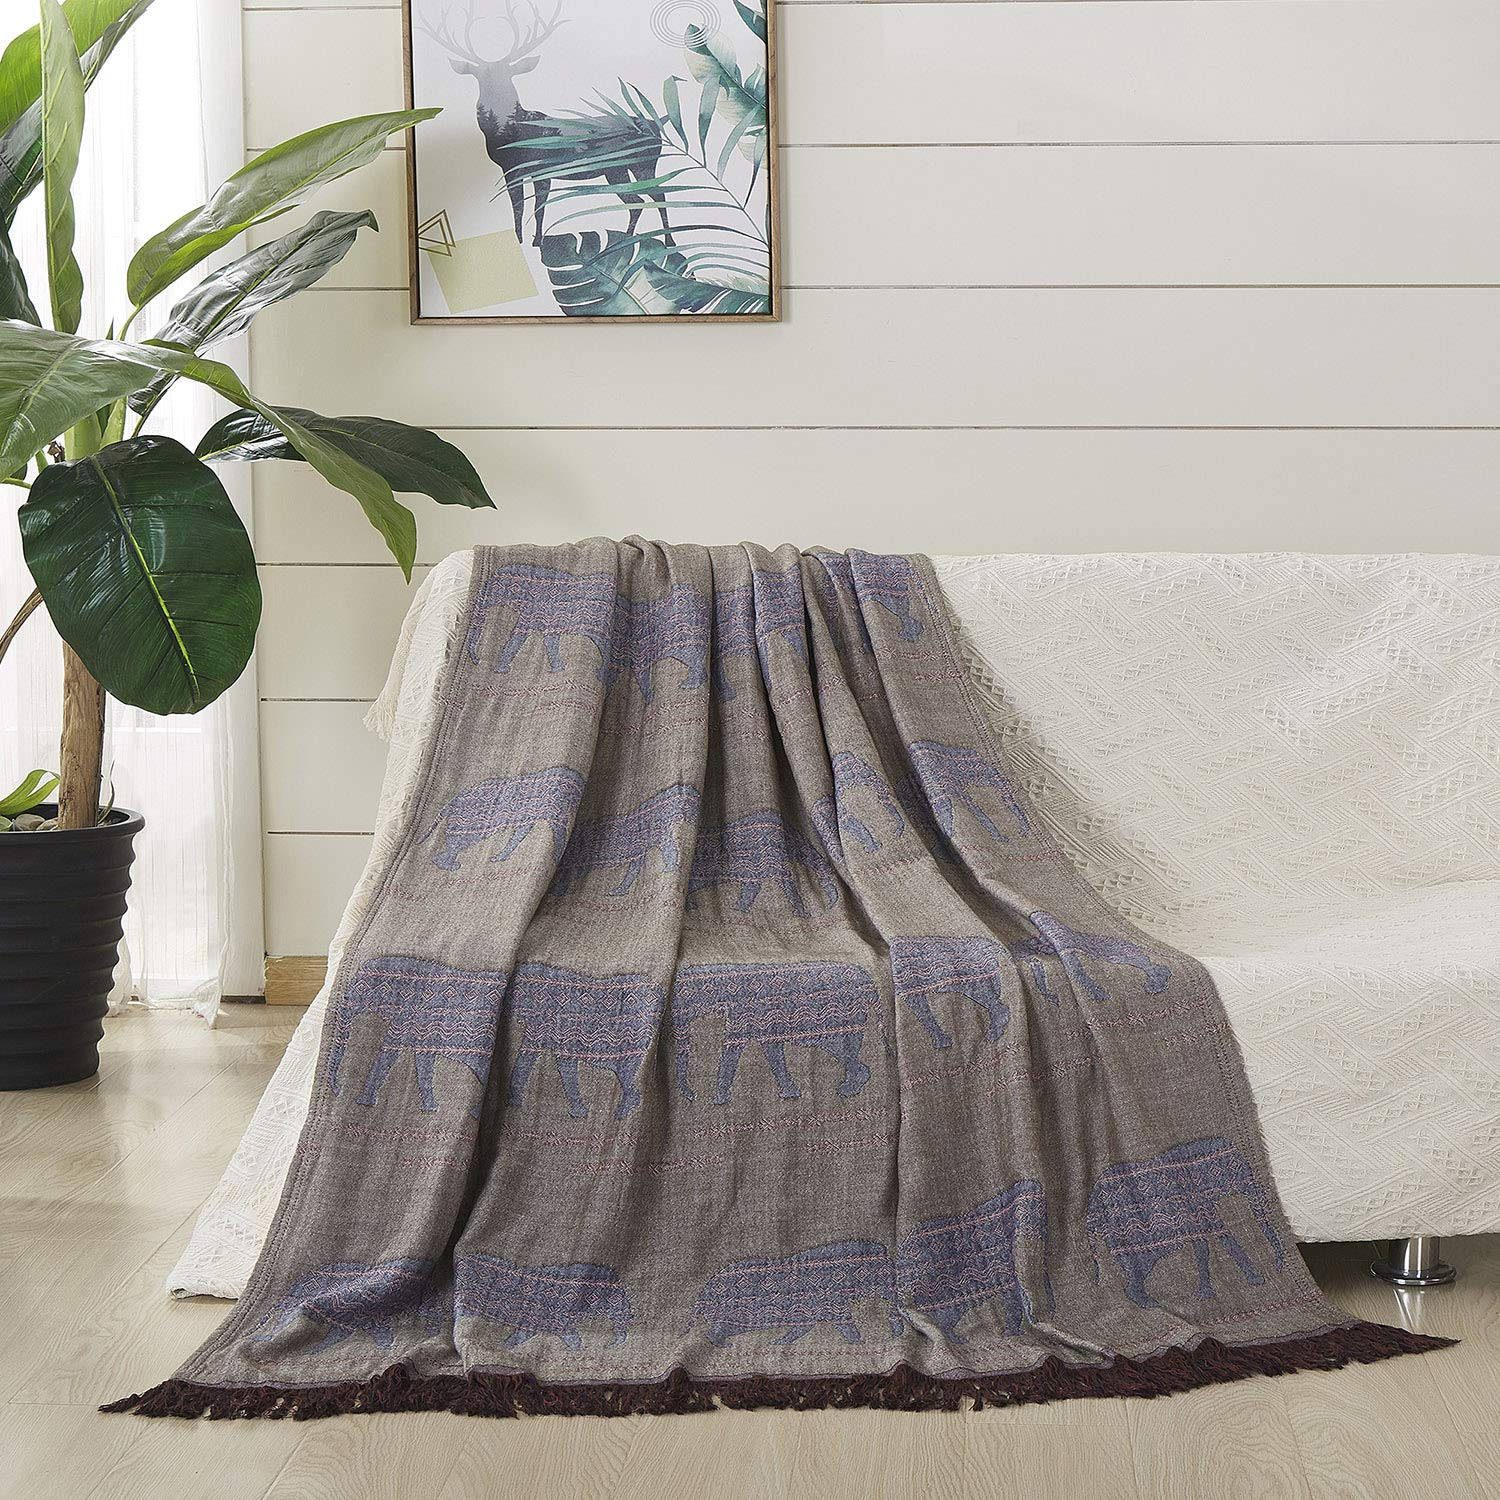 """JML Throw Blanket Soft Lightweight Jacquard Organic Bamboo Cotton Throw Blanket with Tassels Shawl and Wrap Couch Blanket and Throw for Lap Bed Sofa Chair Travel Summer Adult,50"""" X 60""""-Elephant Brown"""